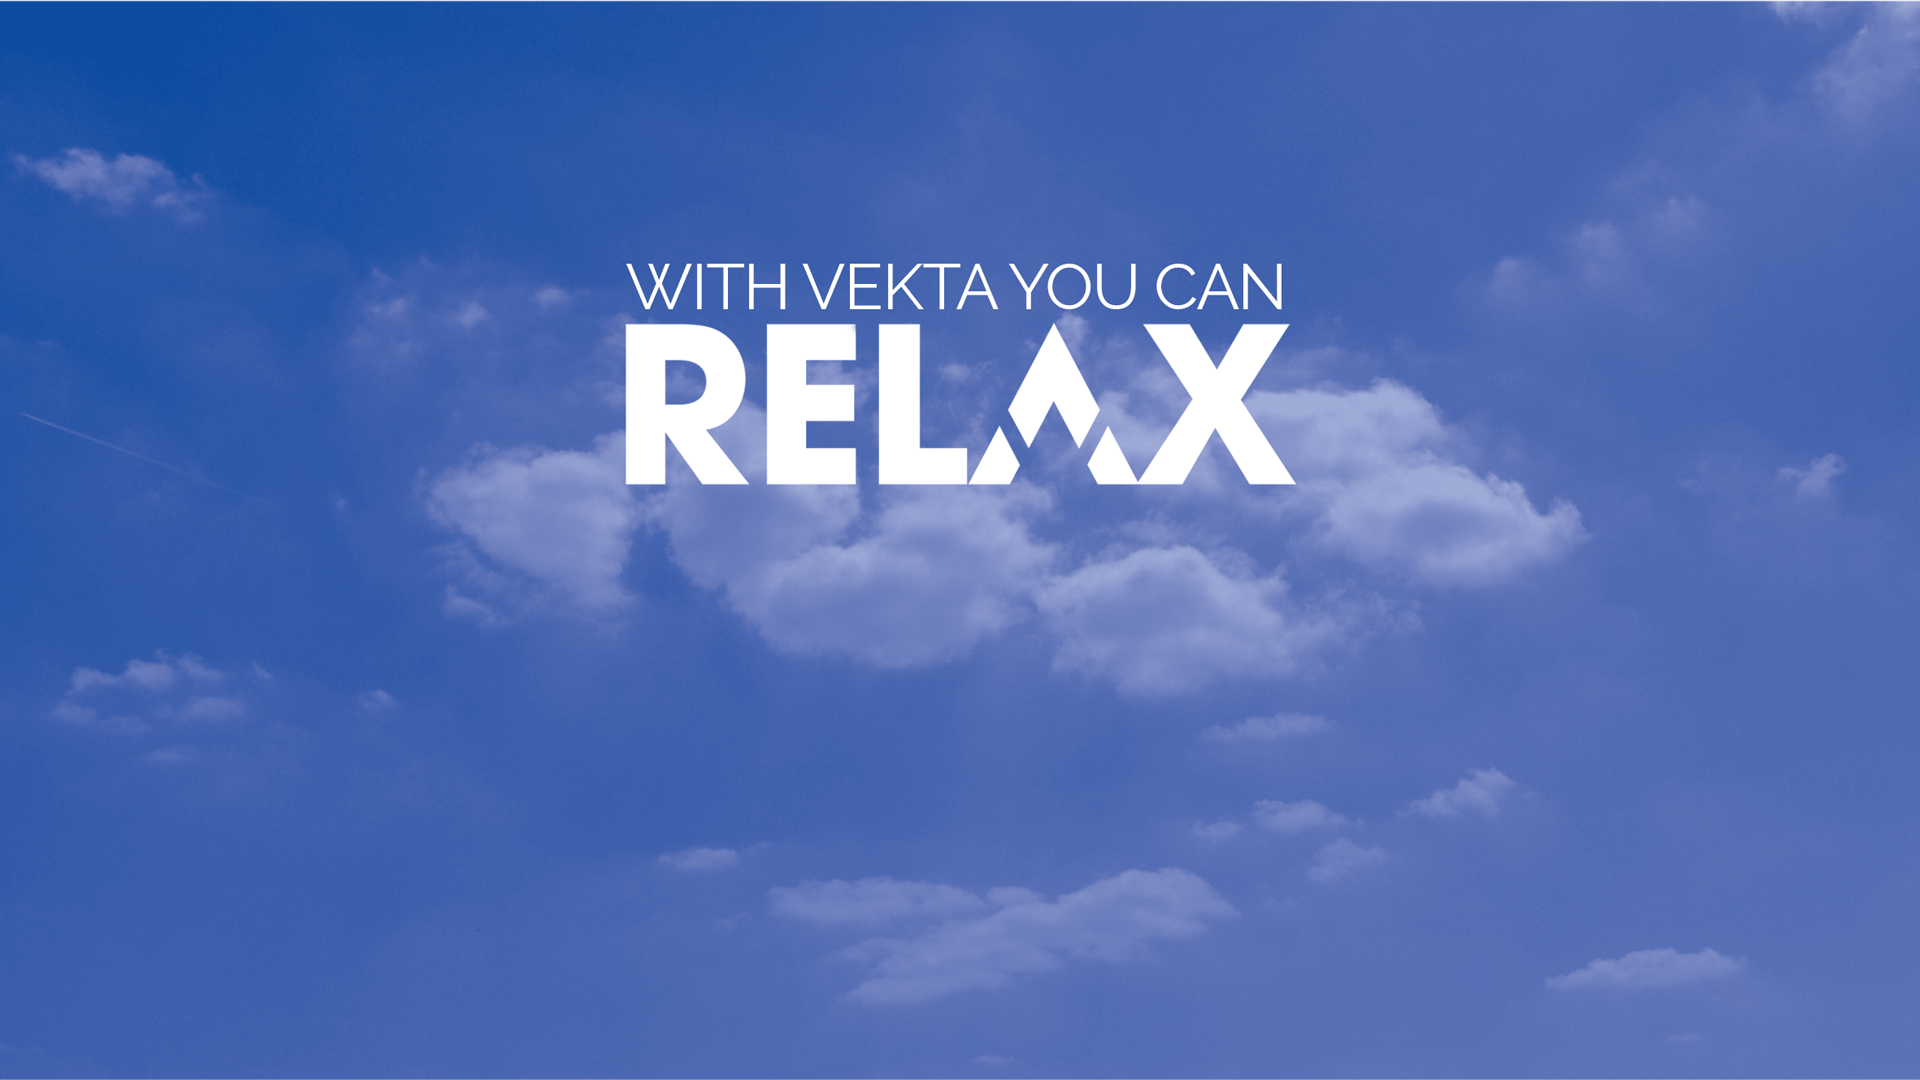 With Vekta You Can